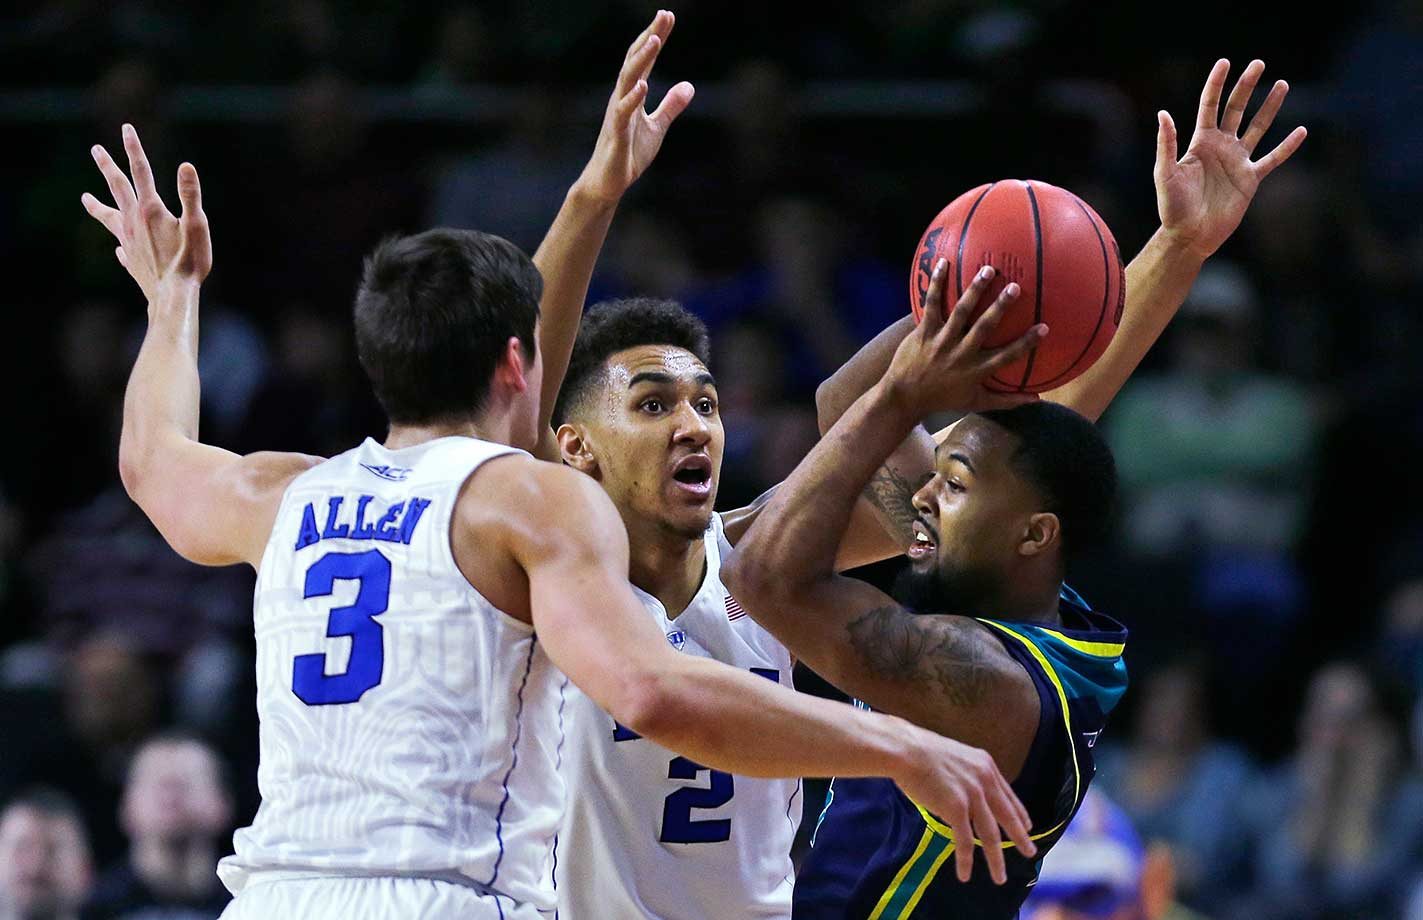 North Carolina-Wilmington's Jordon Talley is trapped by Grayson Allen (3) and Chase Jeter of Duke.